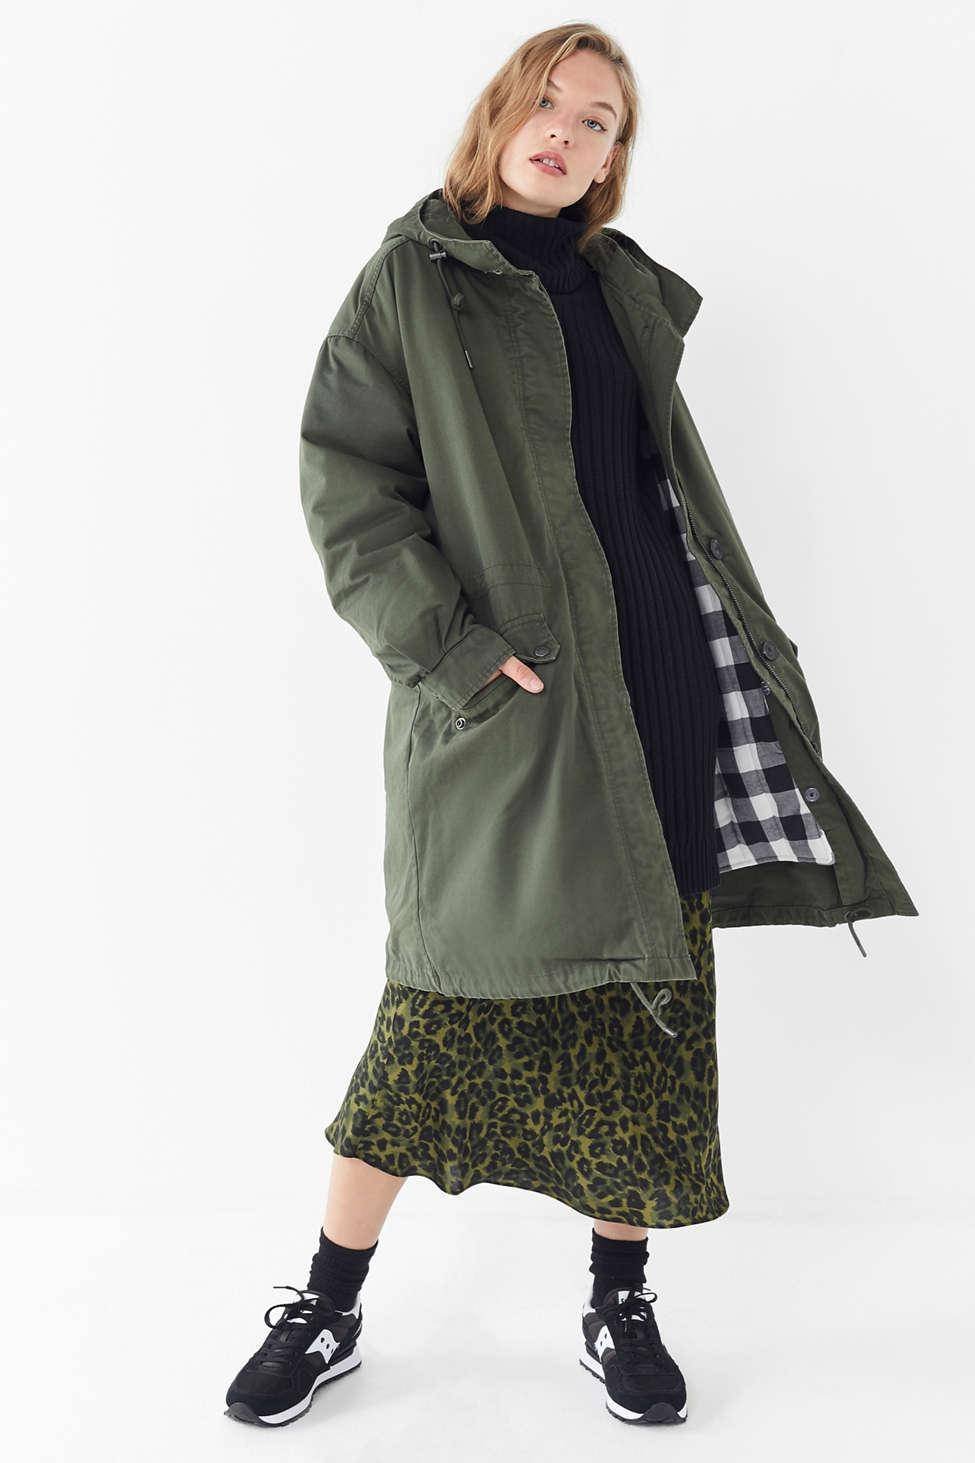 coats-at-every-price-271517-1541101522294-main.1200x0c.jpg